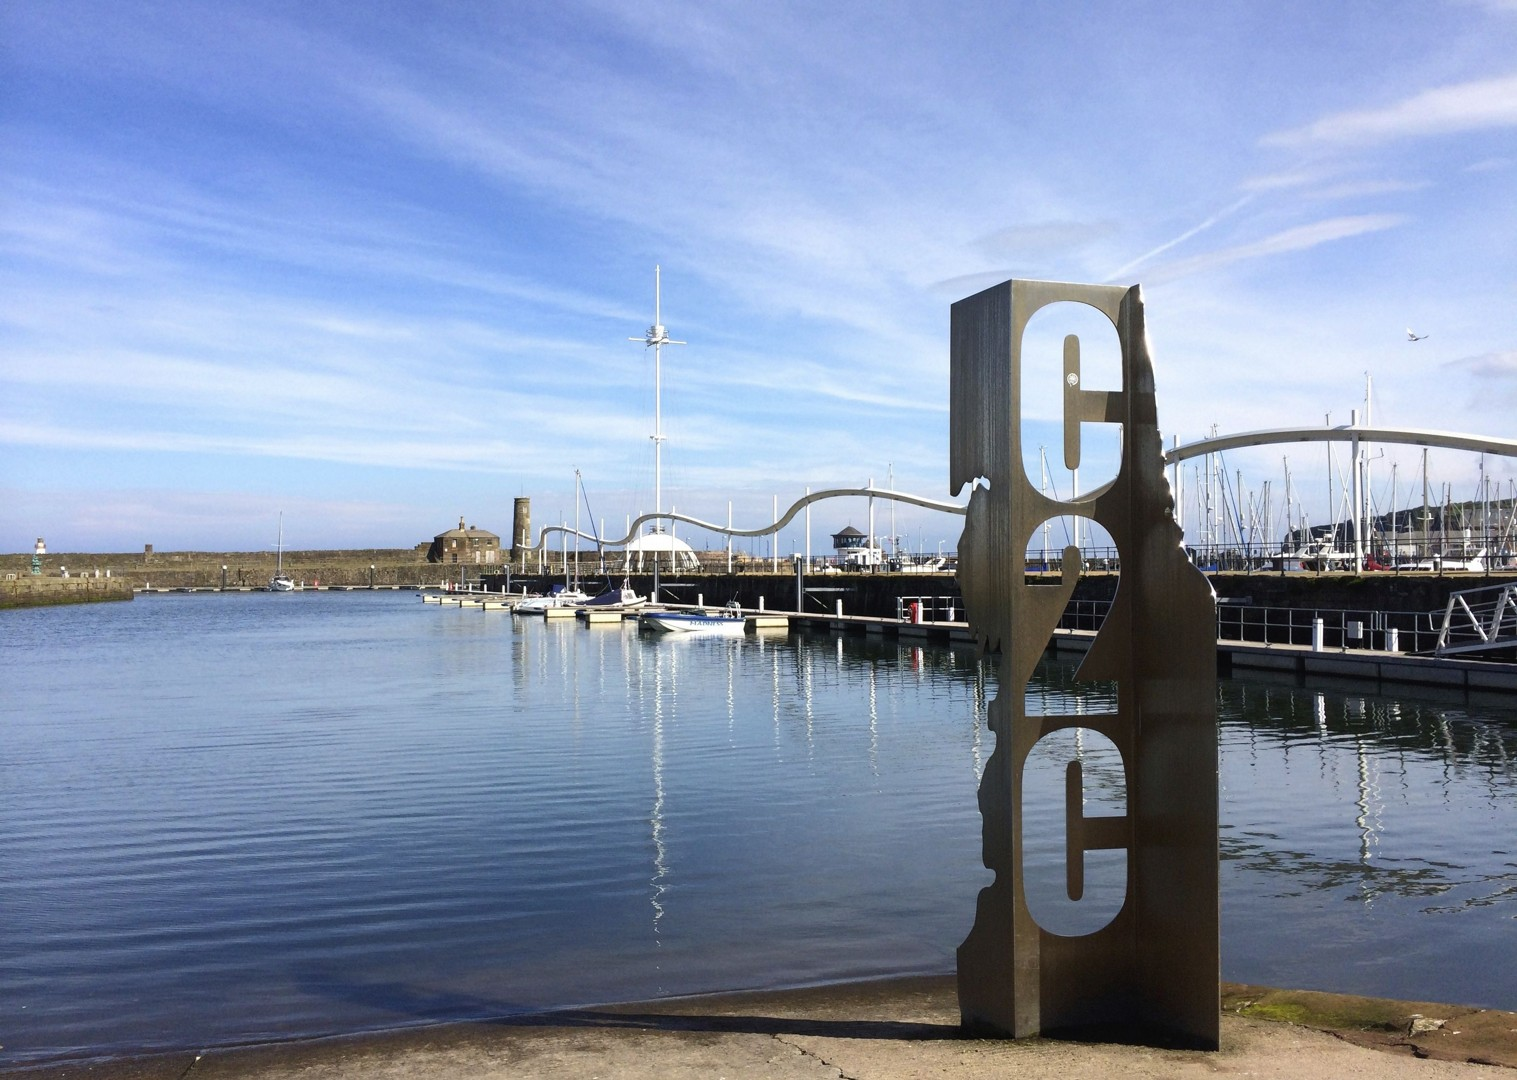 cycling-holiday-c2c-whitehaven.jpg - UK - C2C - Coast to Coast 5 Days Cycling - Self-Guided Leisure Cycling Holiday - Leisure Cycling